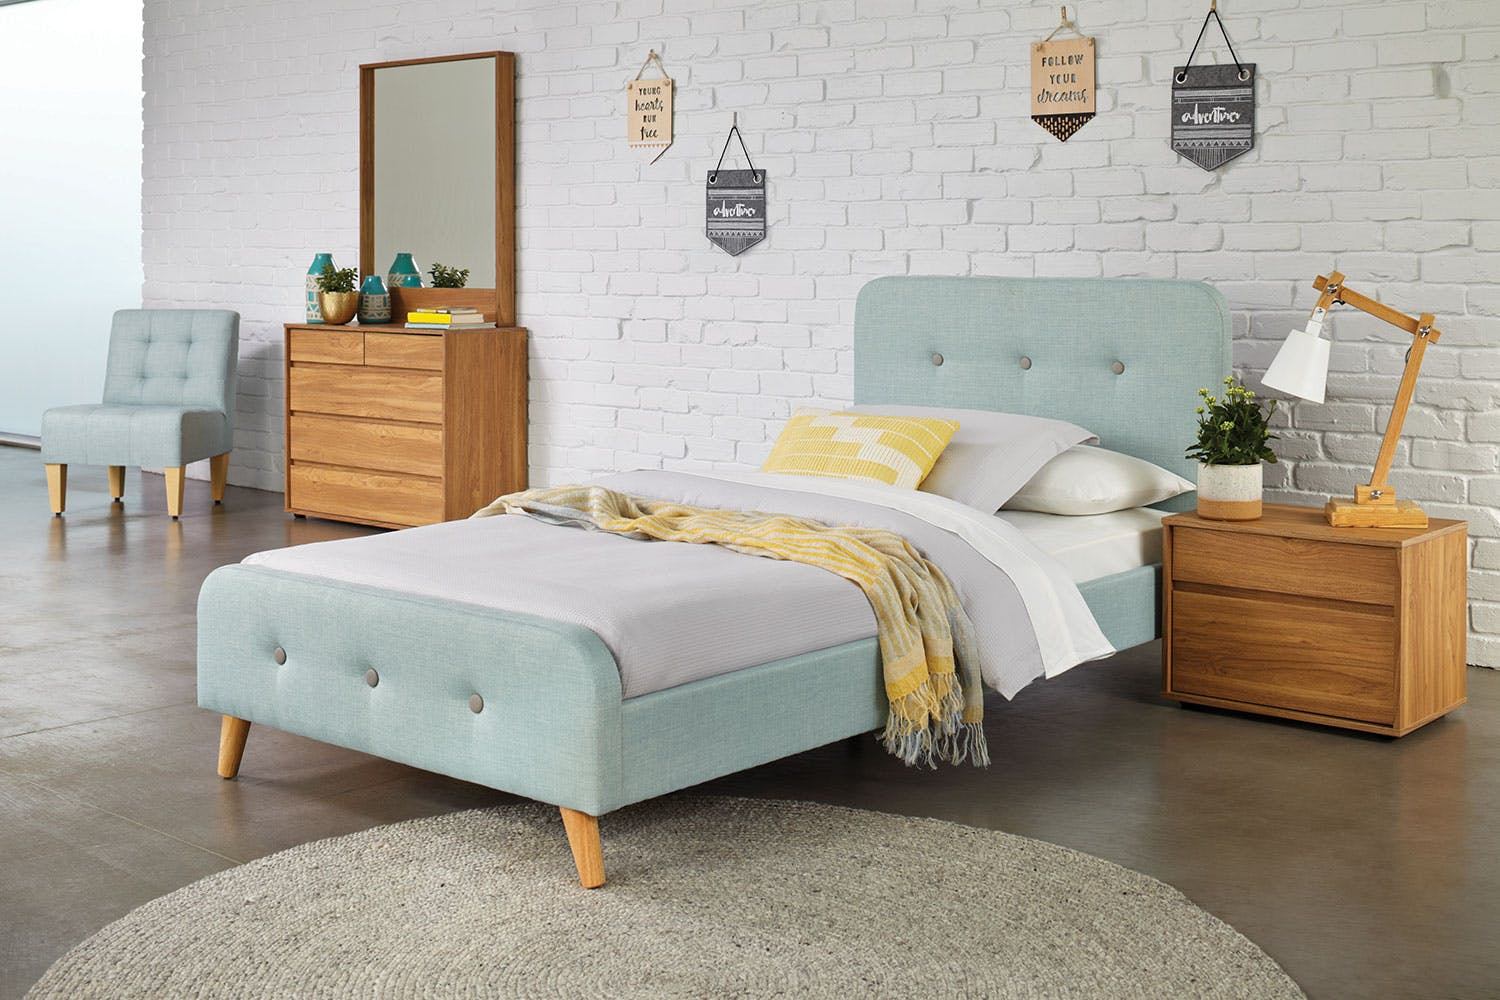 a6cb73be4 Blue Calypso King Single Bed Frame by Nero Furniture ...